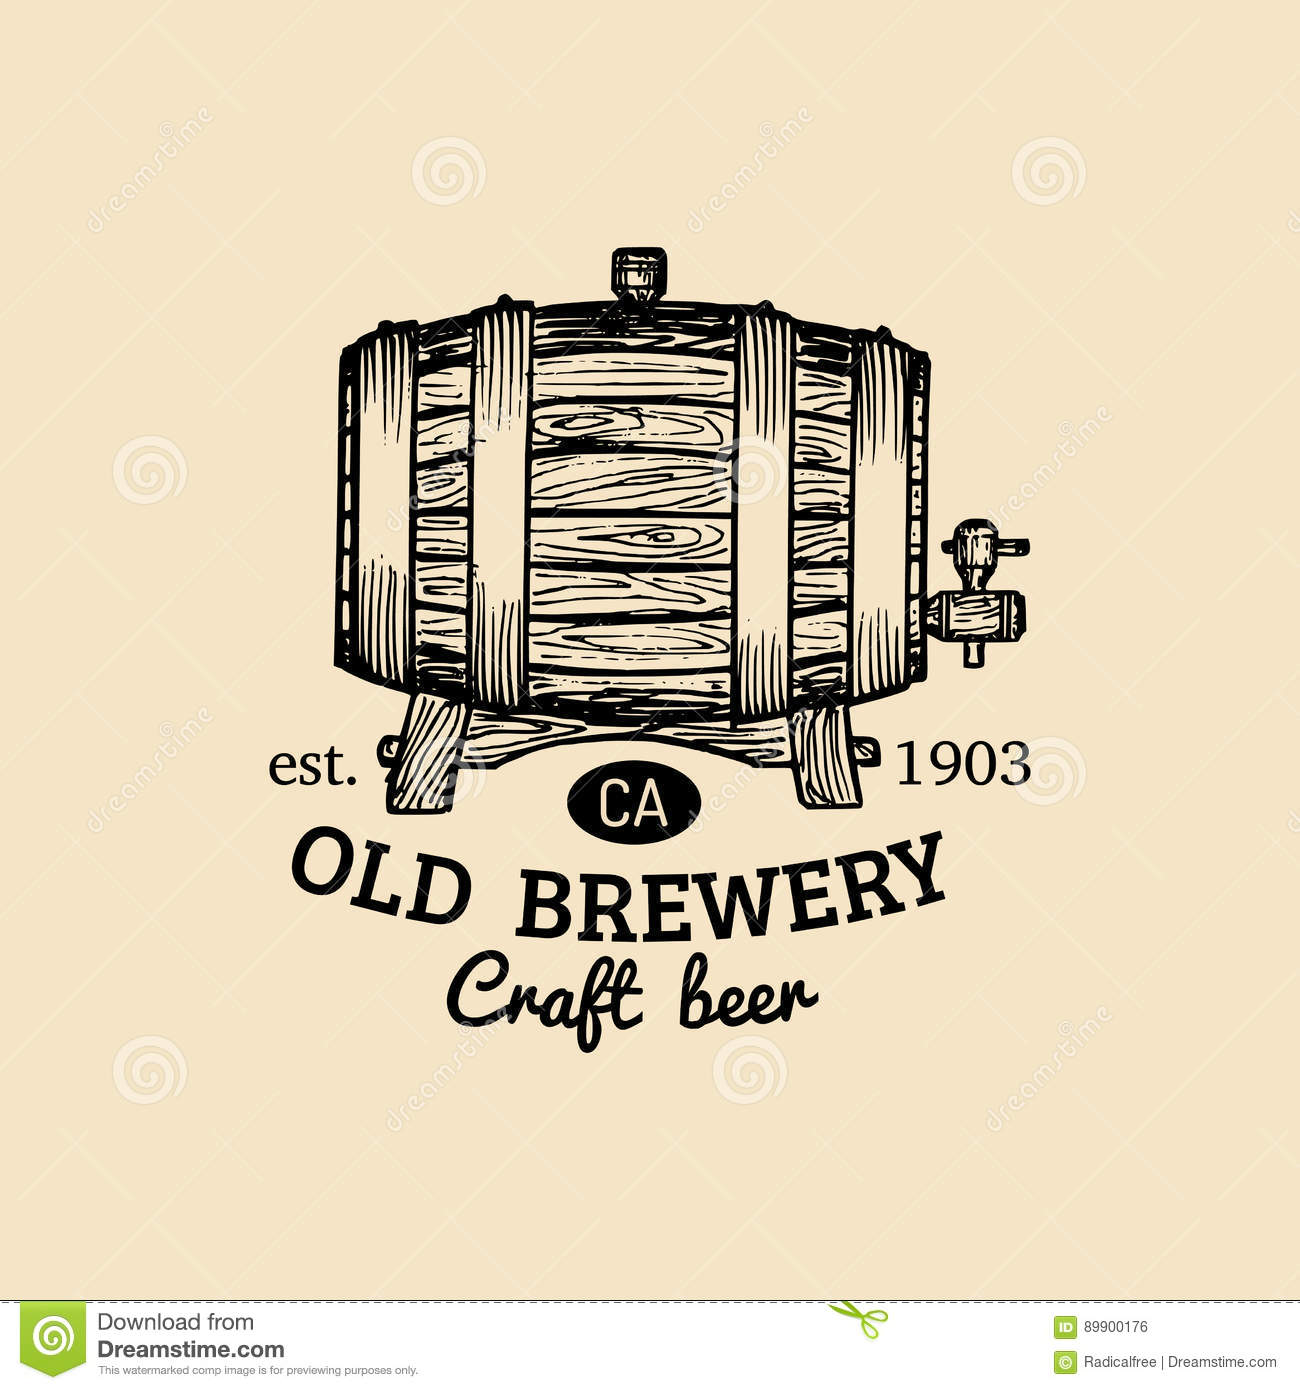 Kraft beer barrel logo. Old brewery icon. Hand sketched keg illustration. Vector vintage lager, ale label or badge.